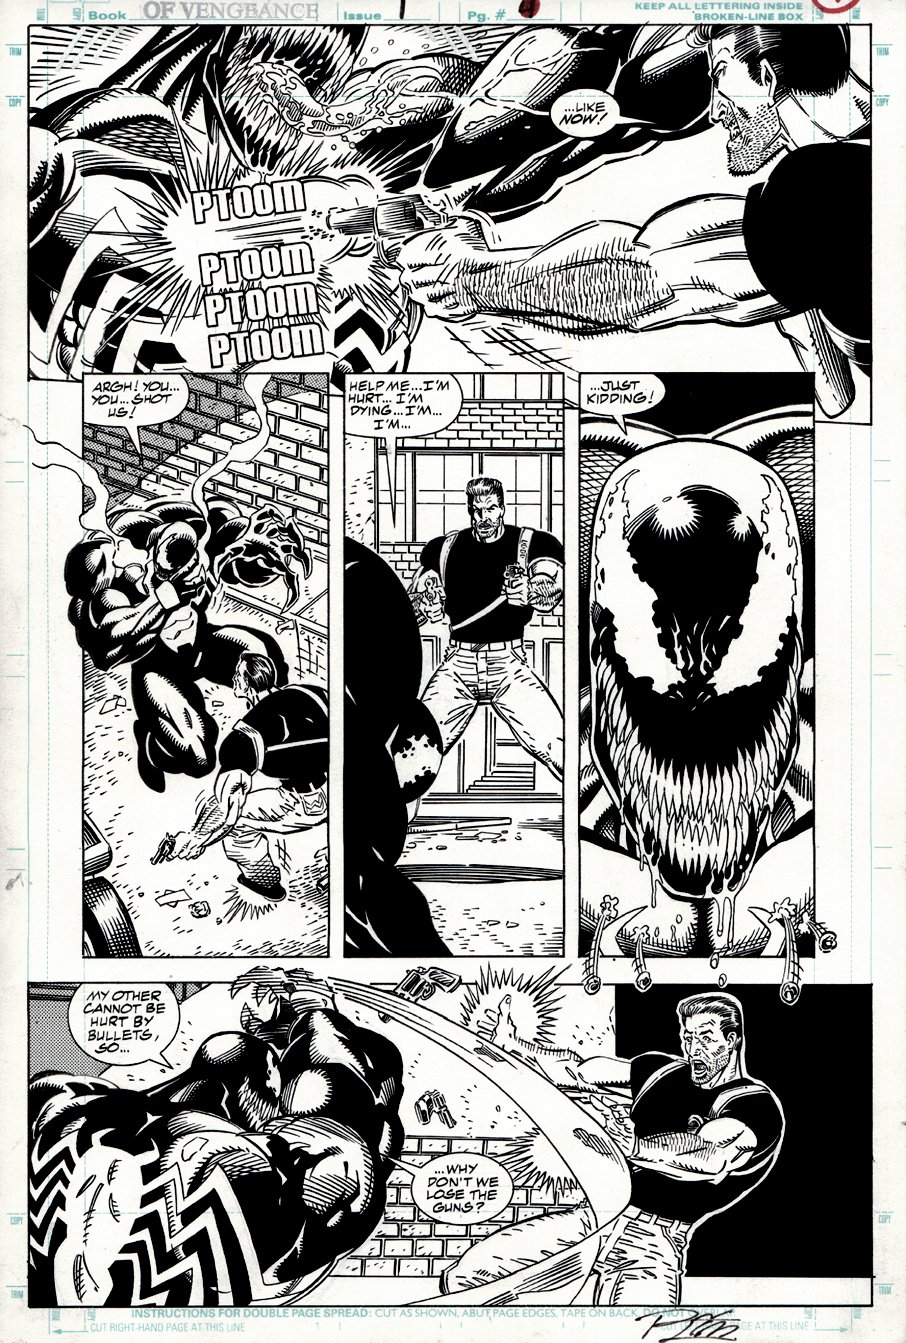 Venom: Nights of Vengeance #1 p 4 (1994)